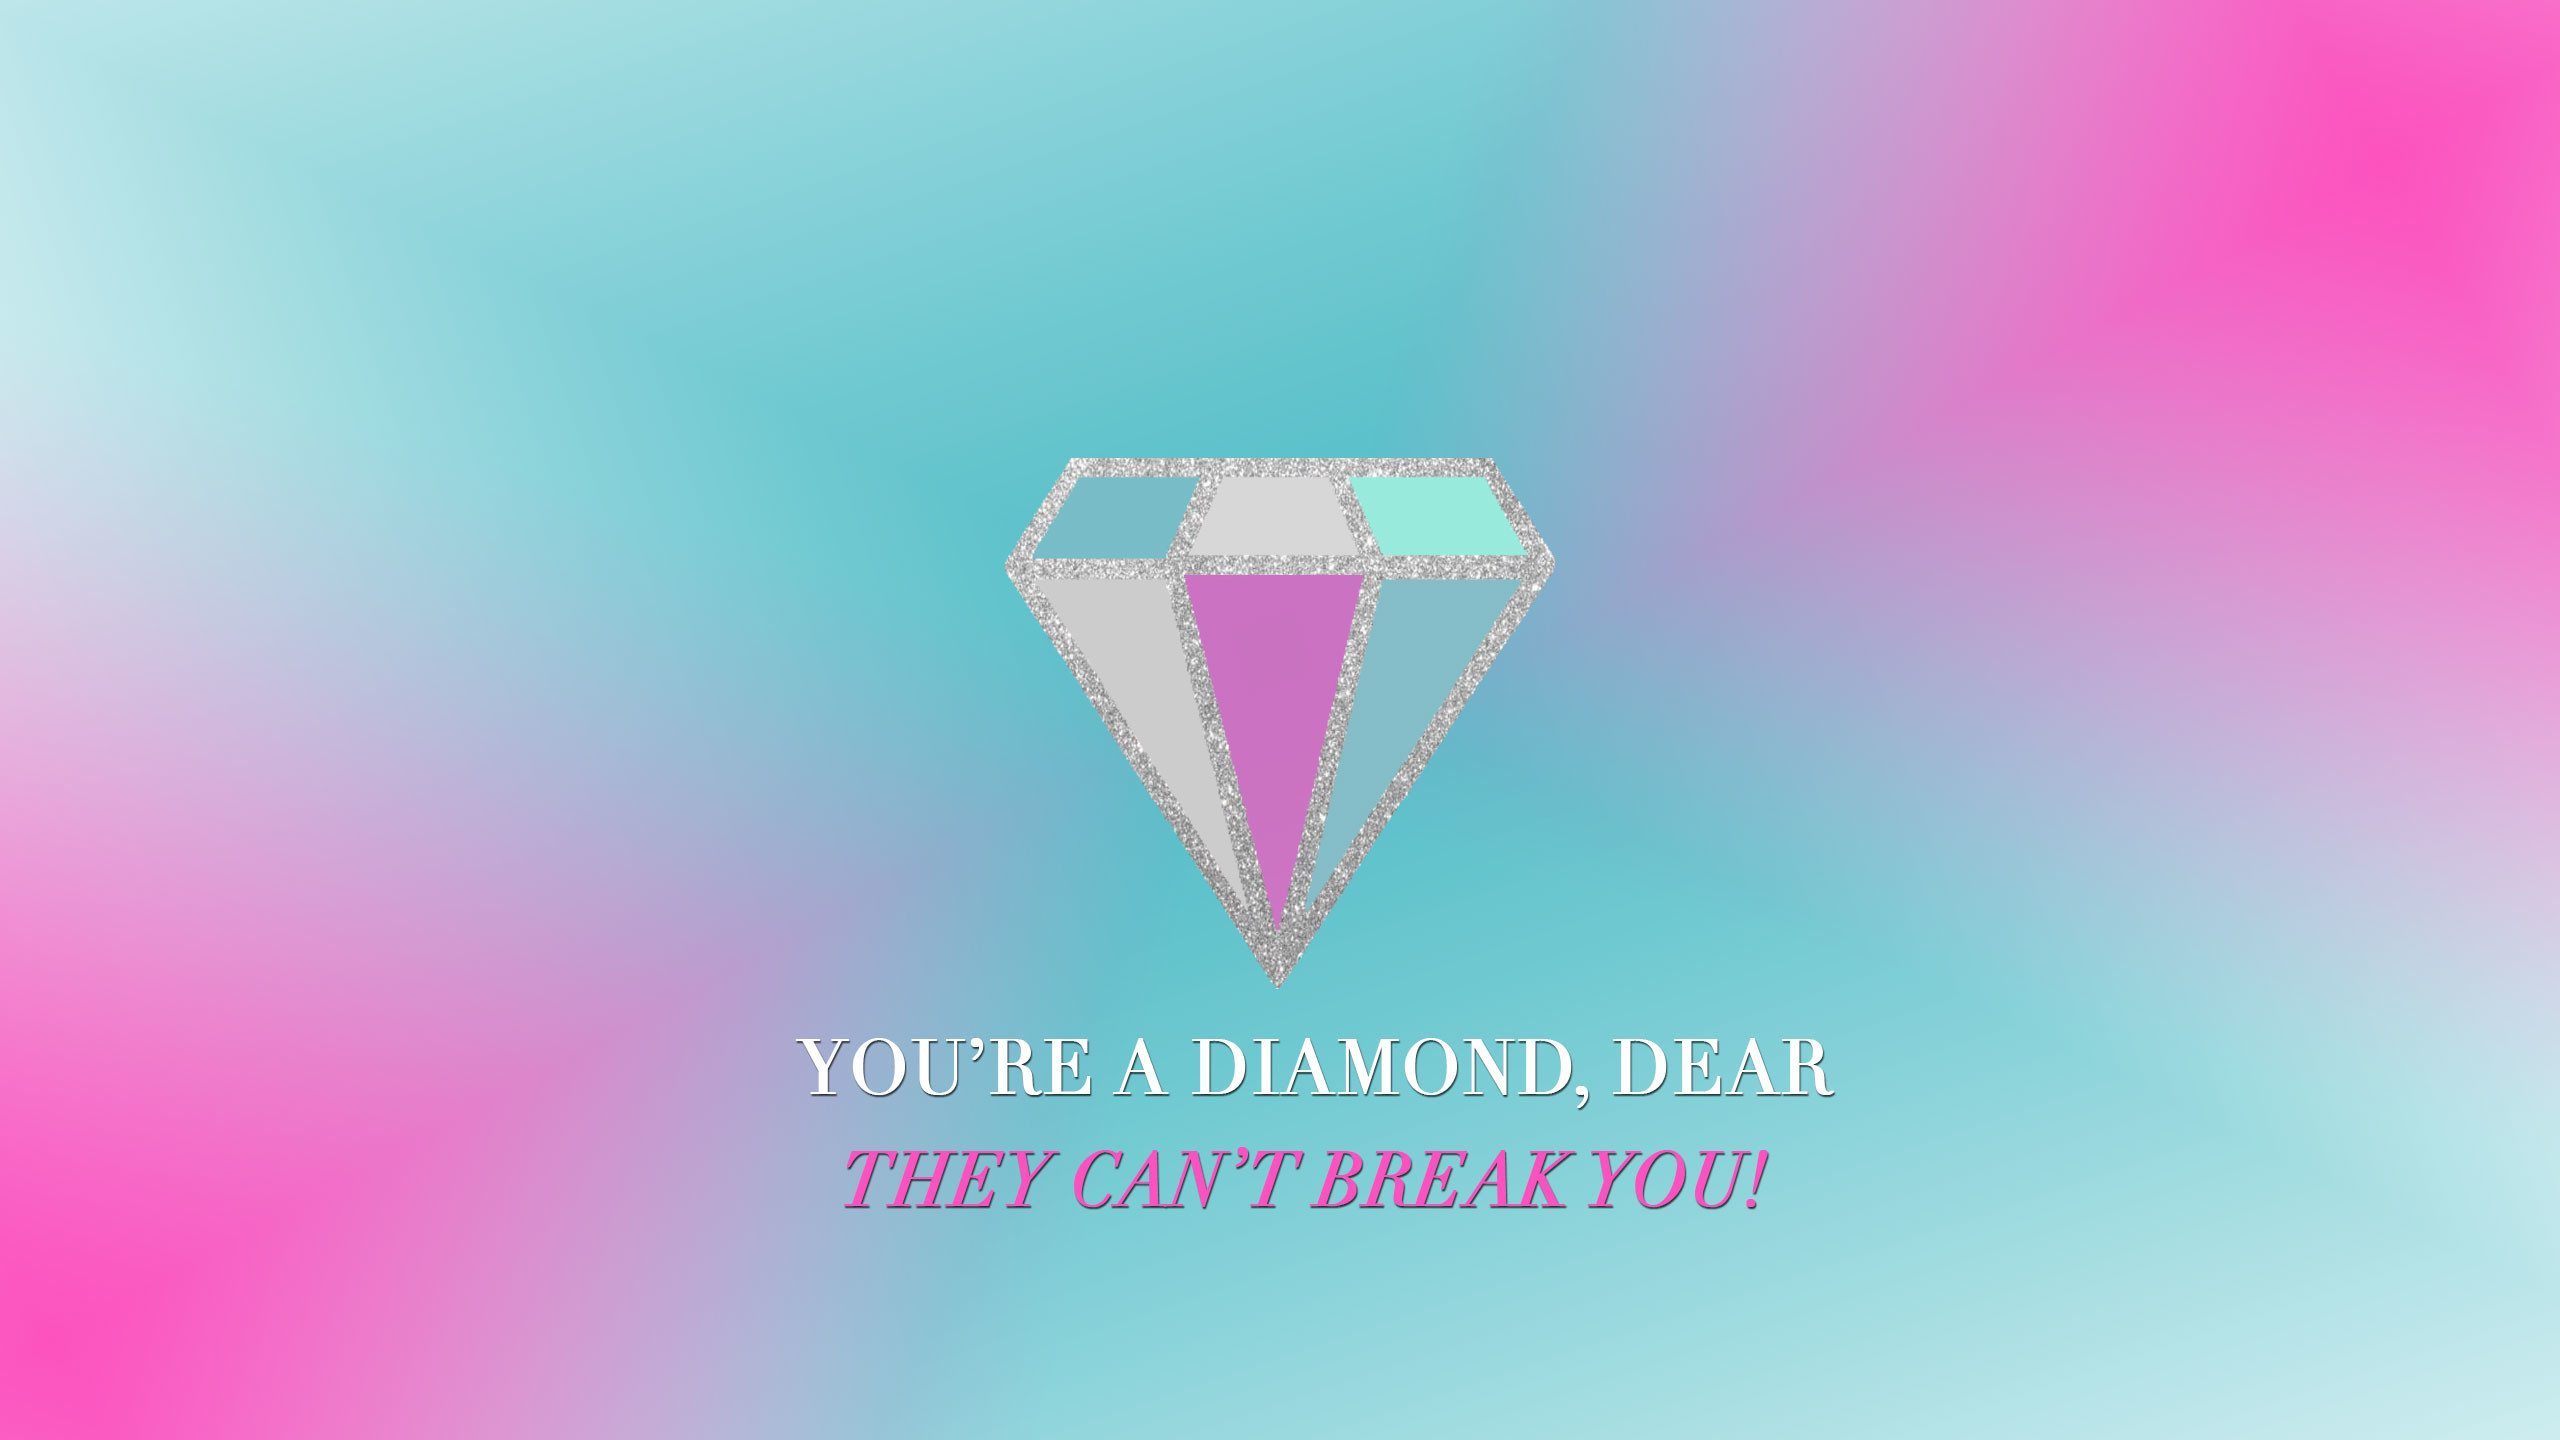 Cute Girly Wallpapers For Ipad Mini Wallpaper   Data-src - Girly Backgrounds With Quotes - HD Wallpaper